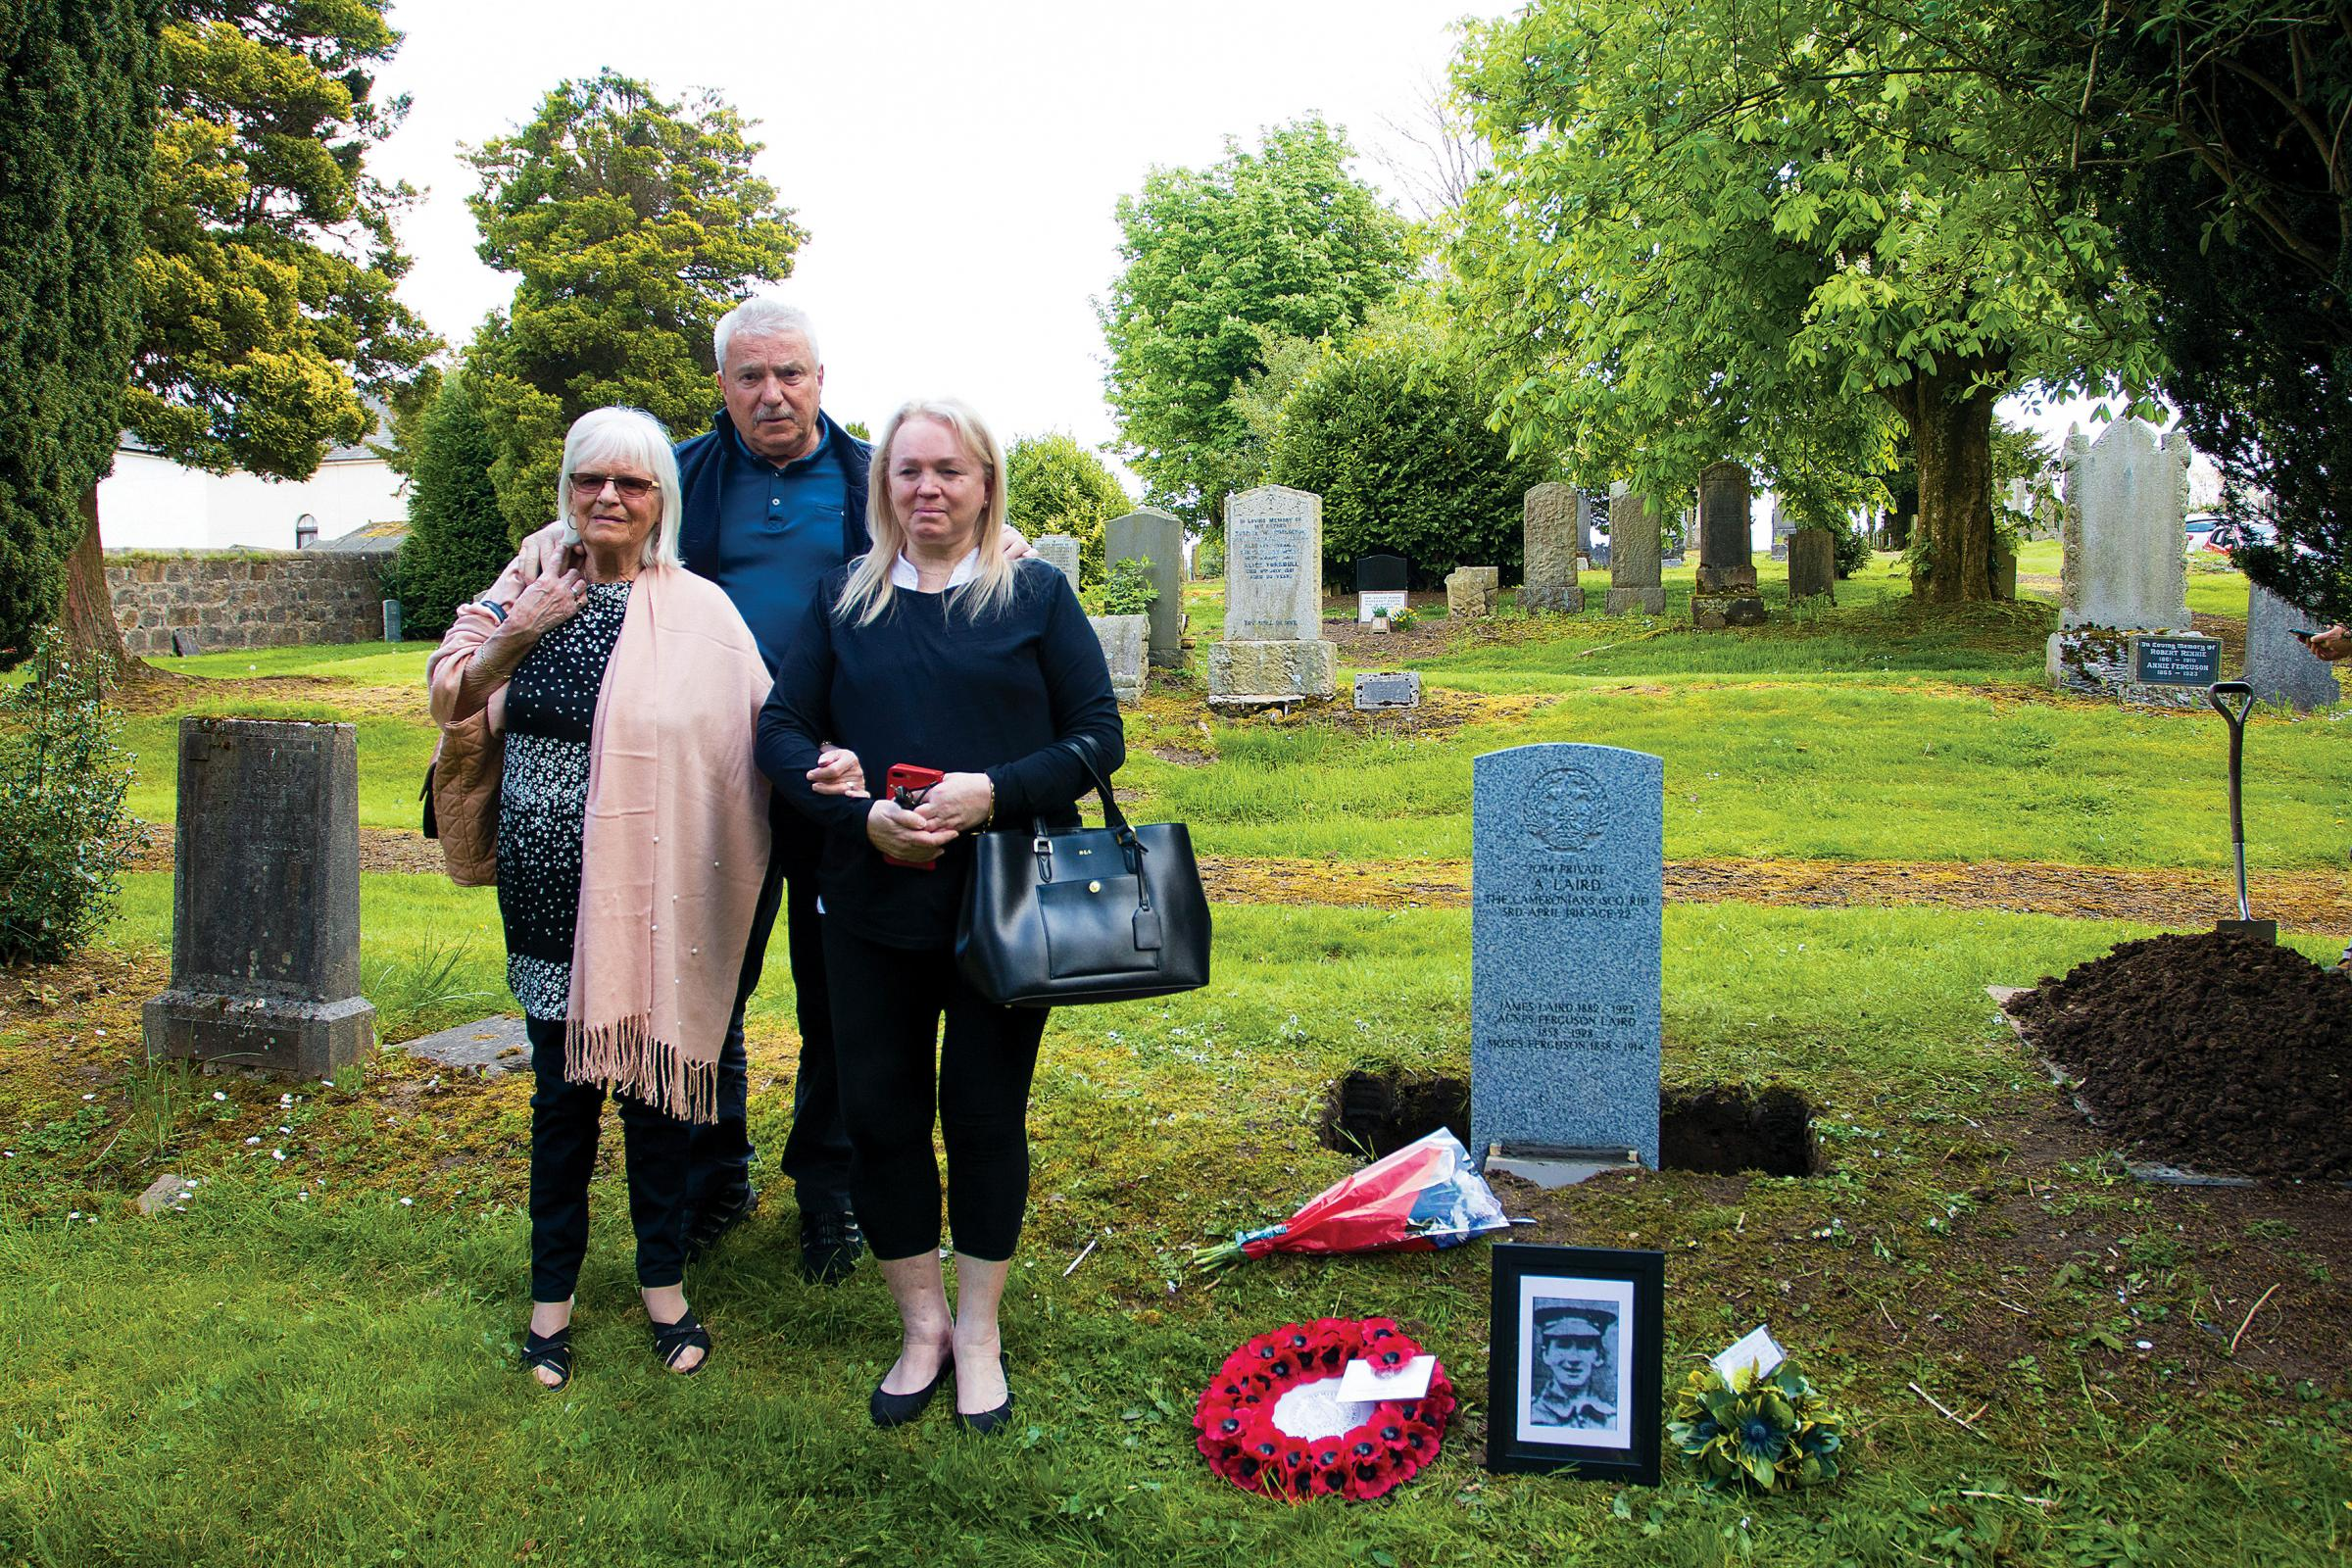 Family members Elizabeth Laird Limevall, John Laird and Jean Laird Avery at the new headstone